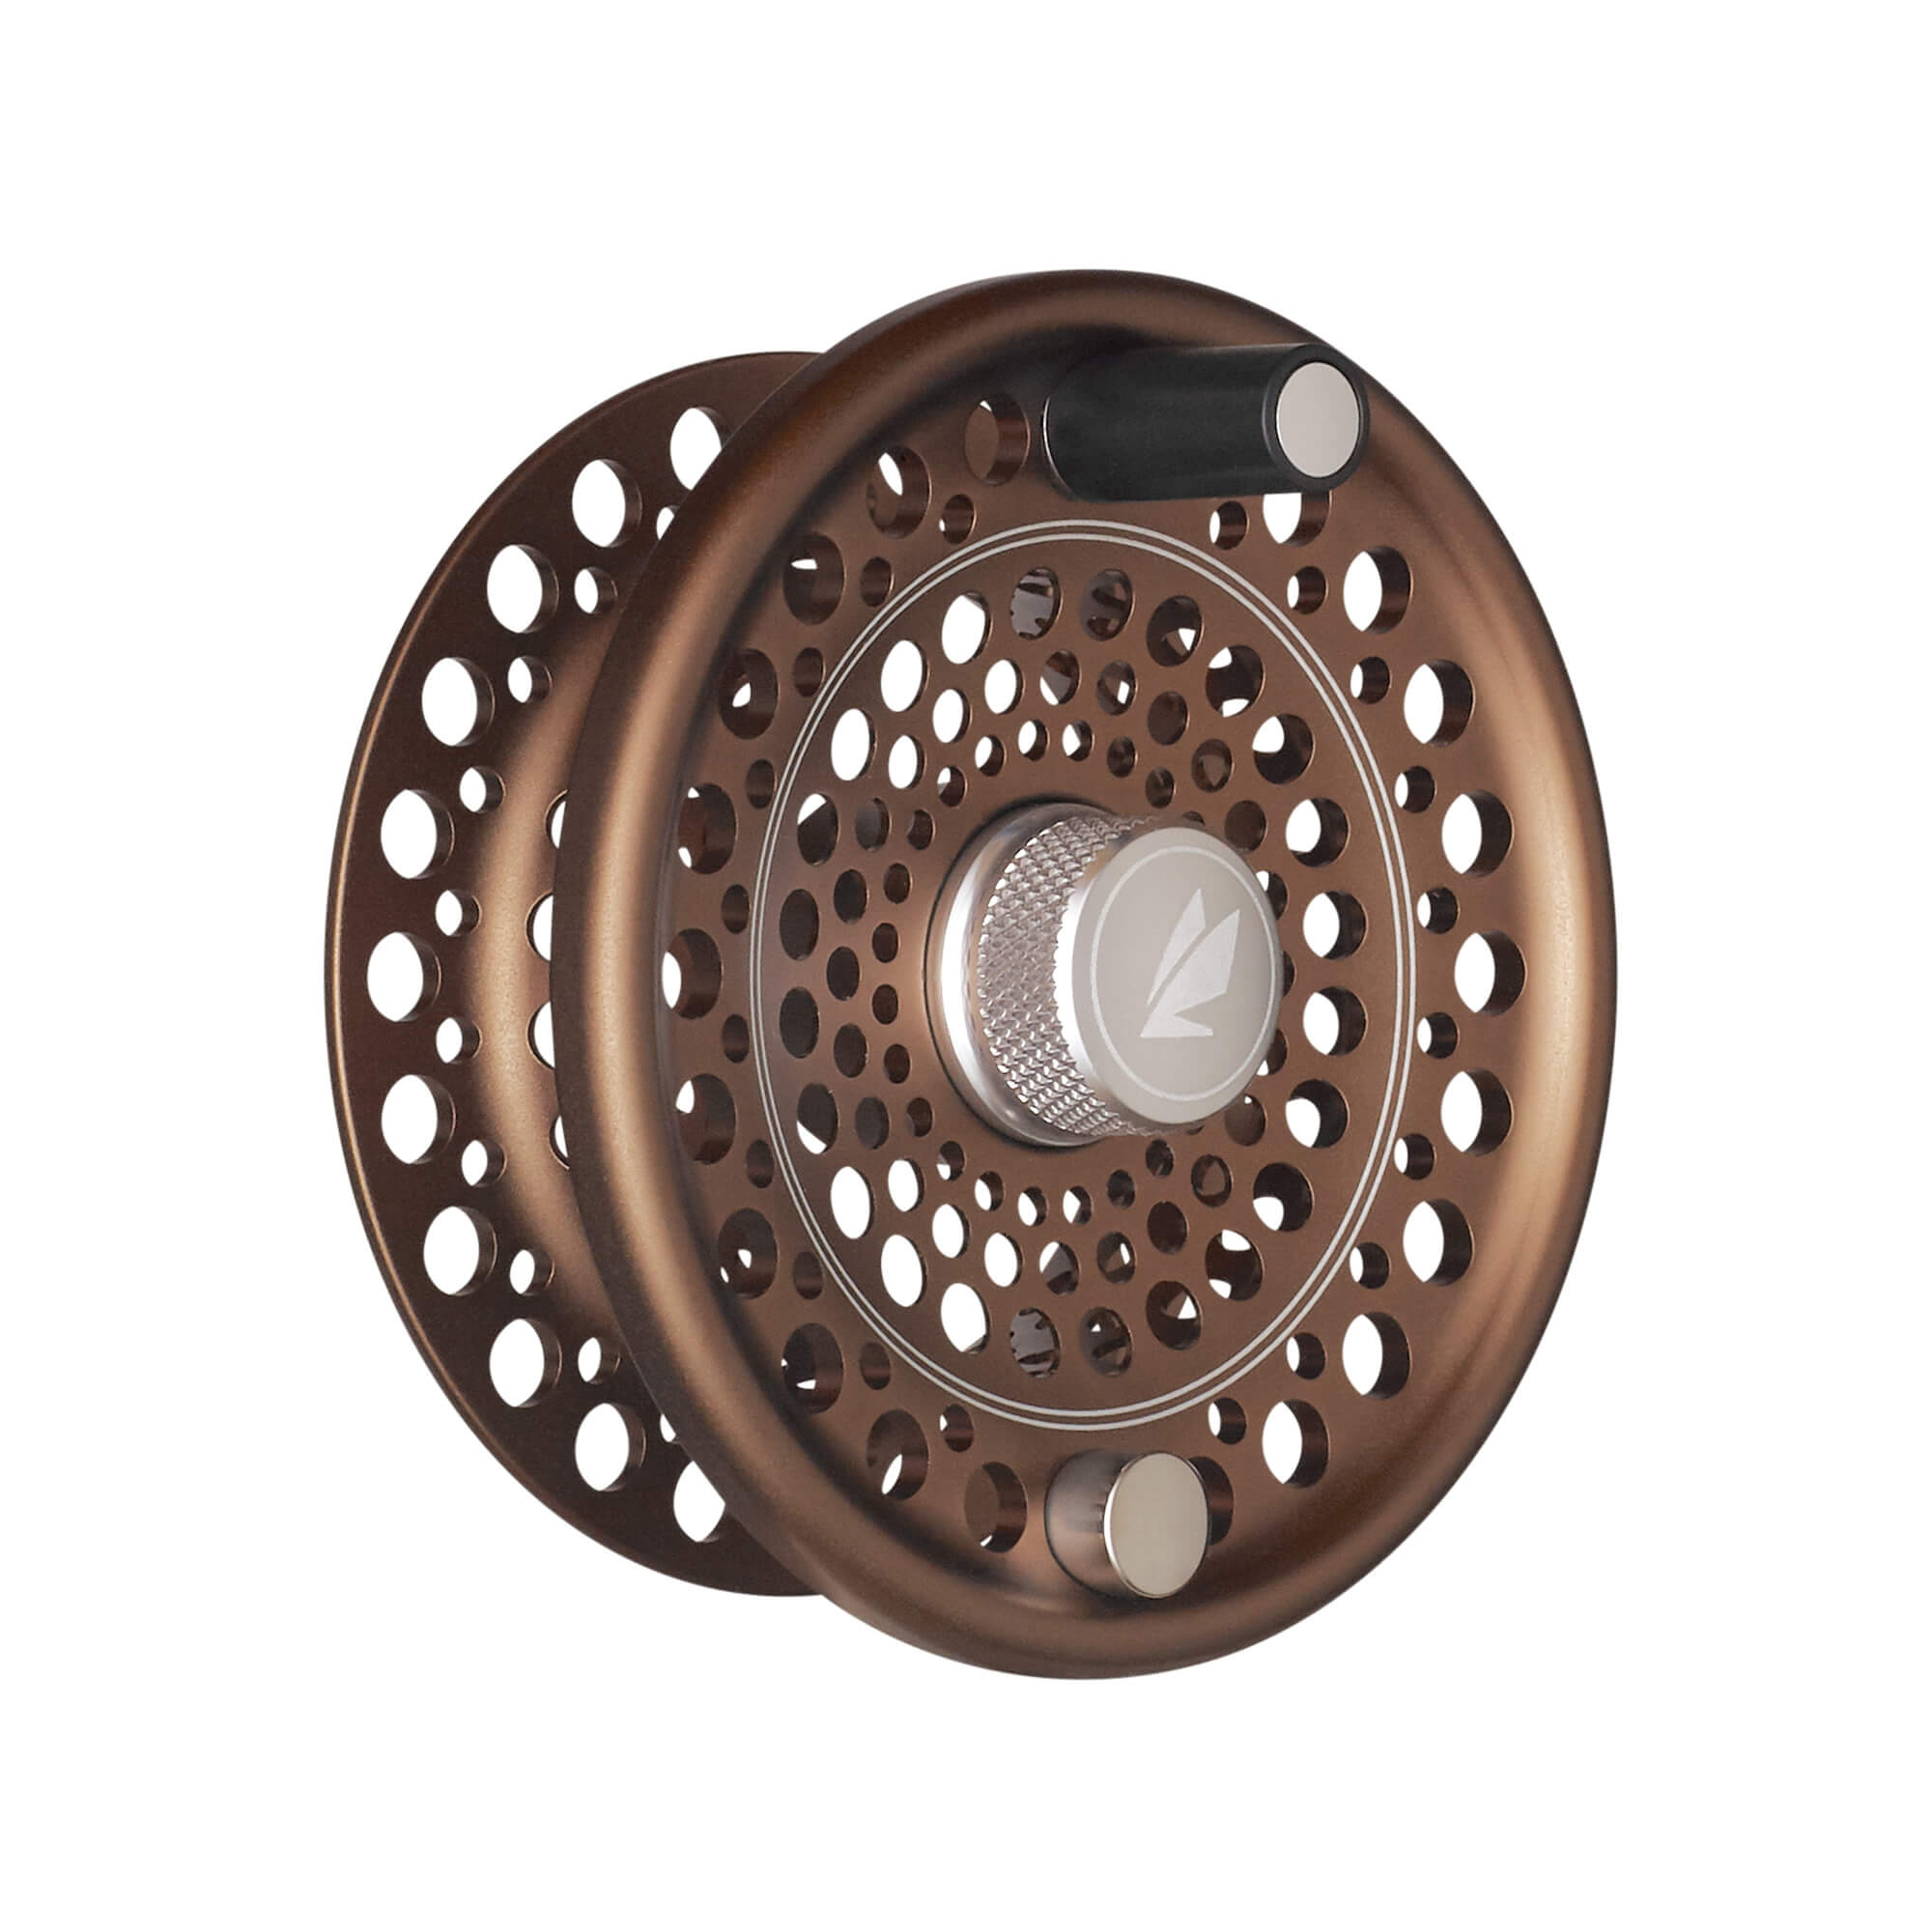 TROUT / TROUT SPEY / SPEY